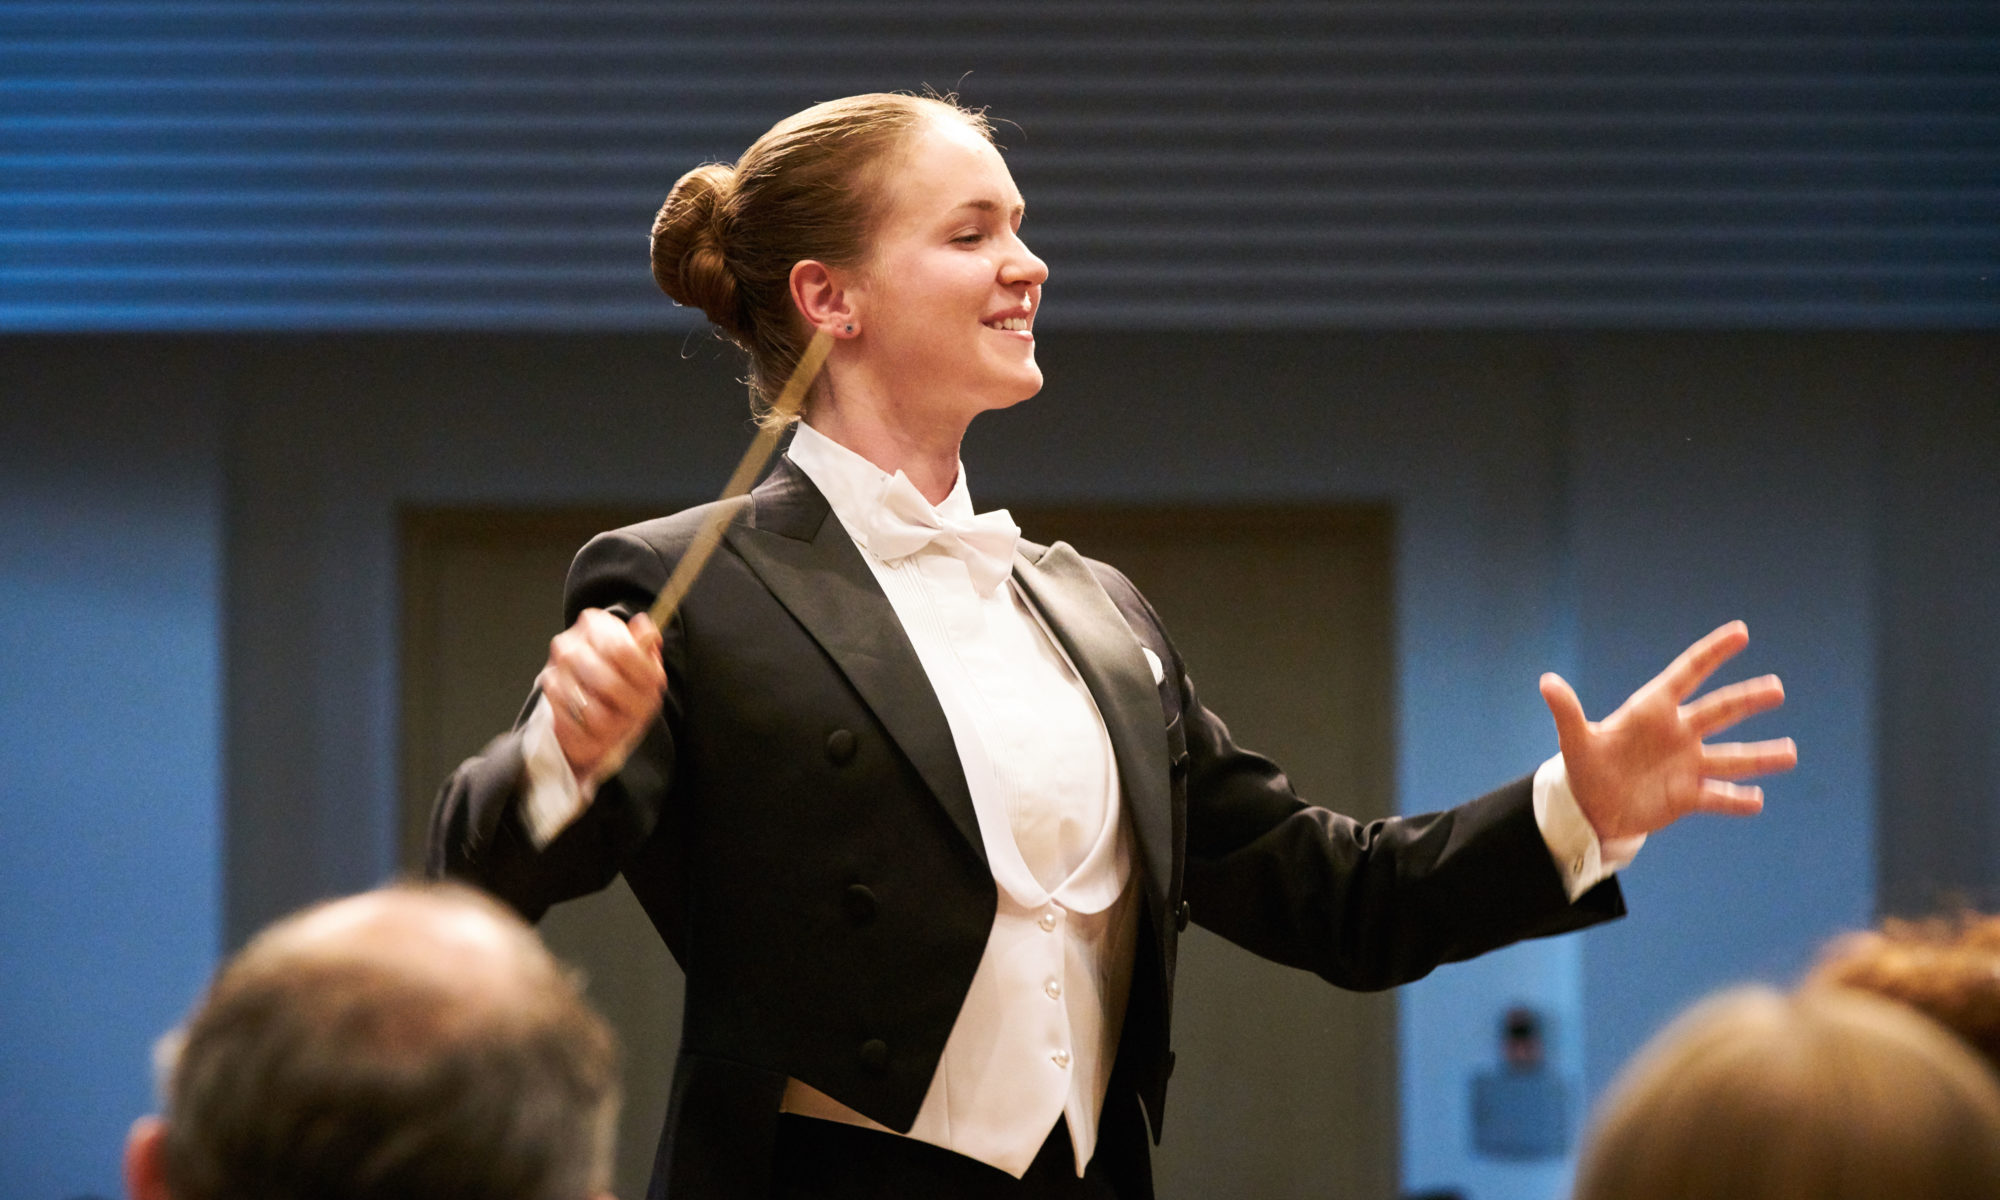 Magdalena Pawlisz, Conductor fot. Marcus Witte